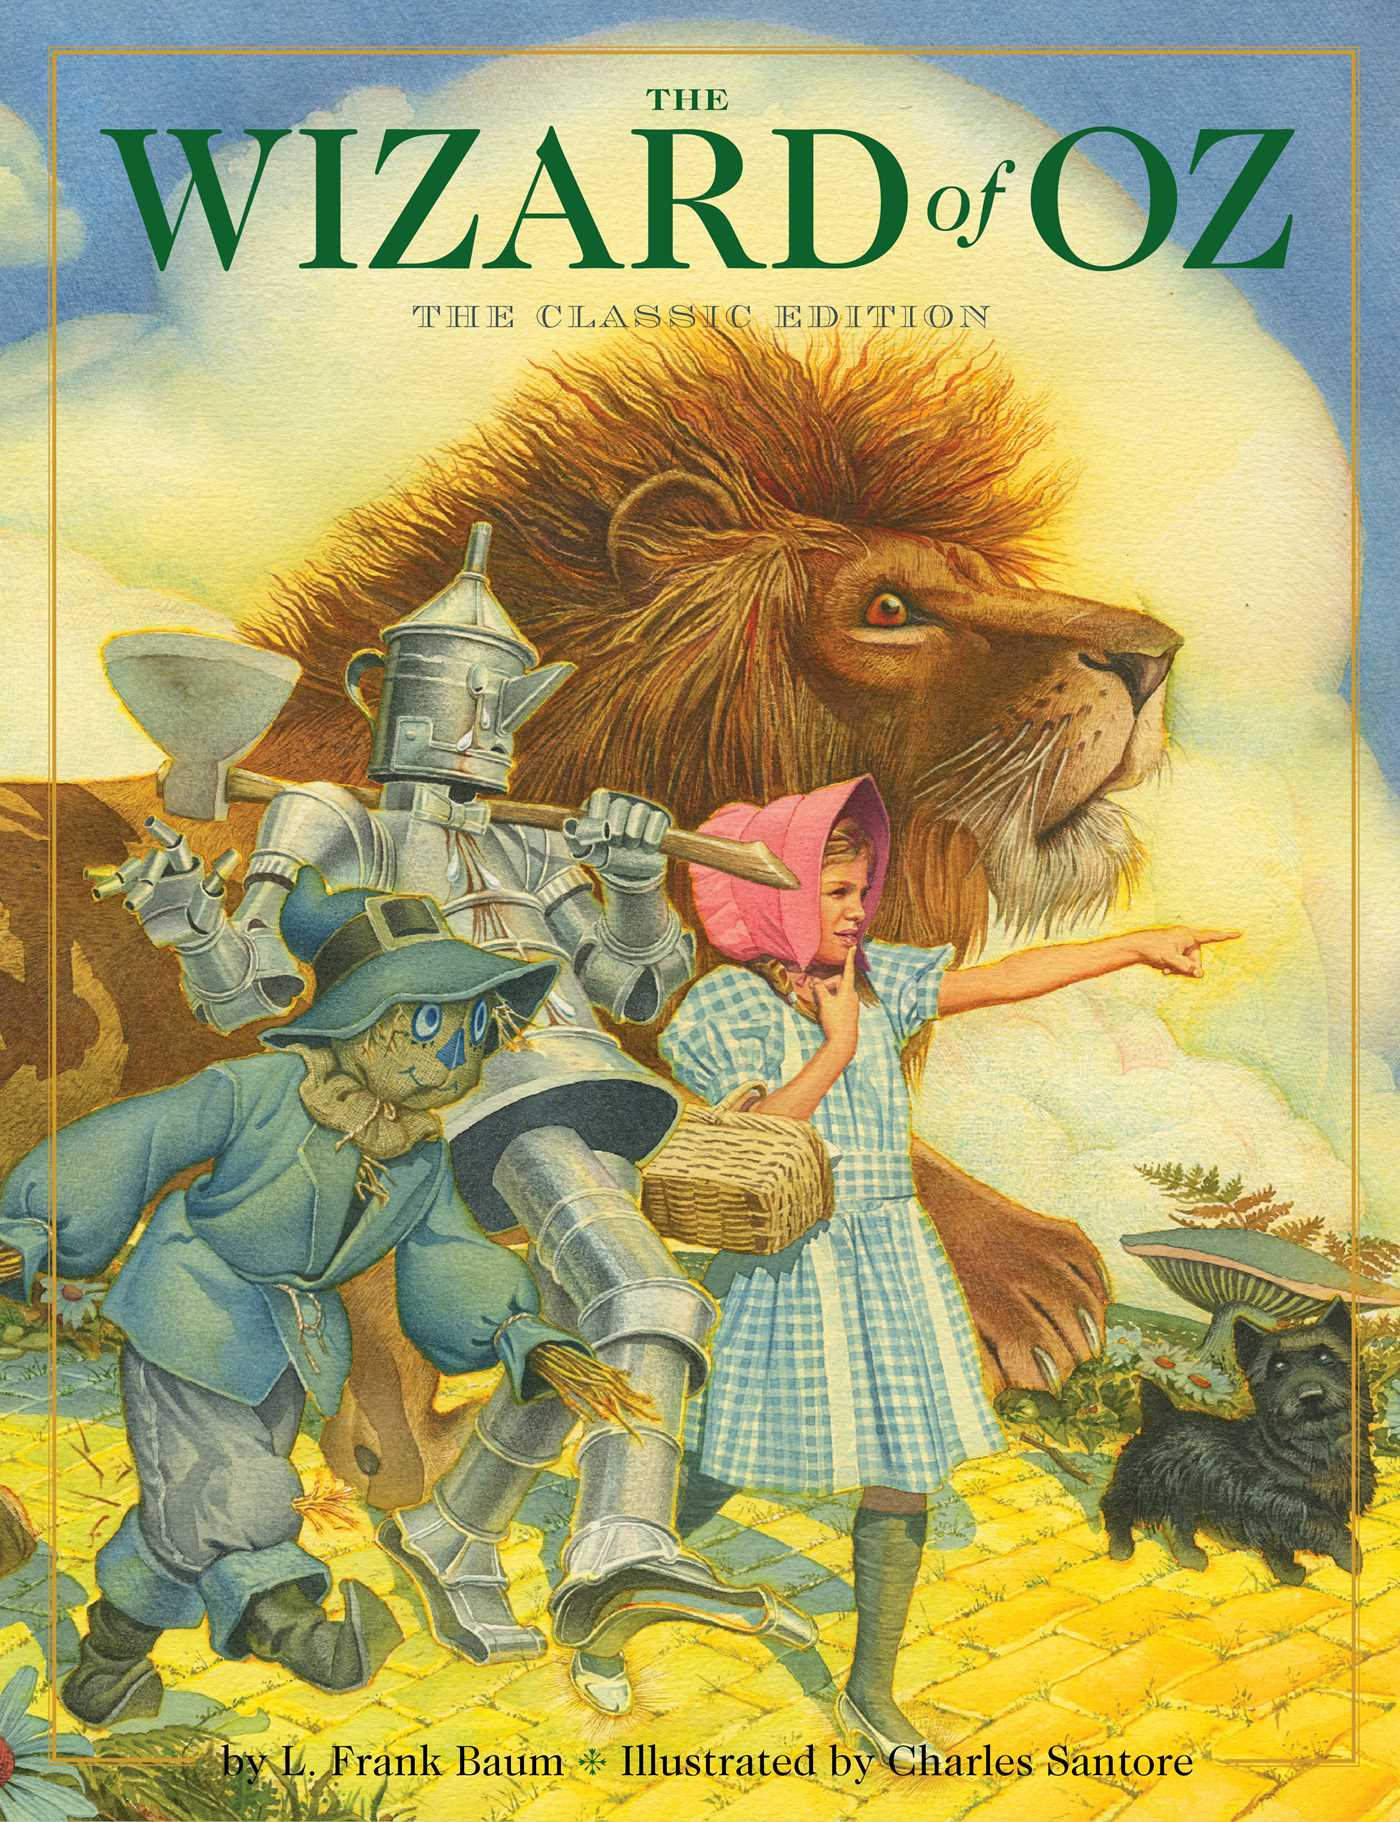 A modern reimagining of the stories that led to 'The Wizard of Oz'.